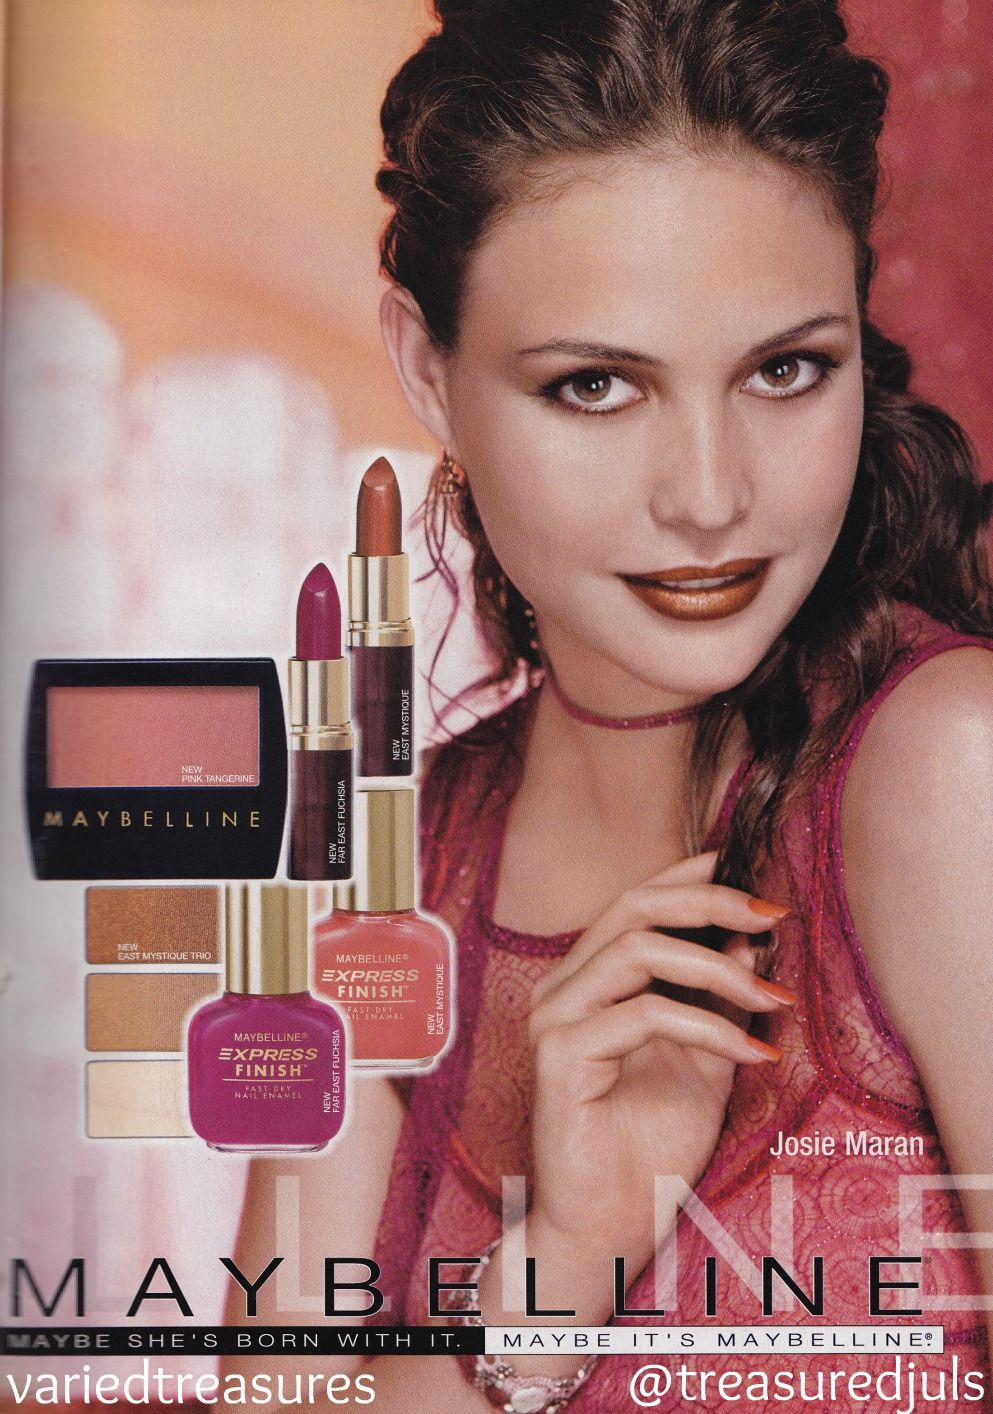 90s #maybelline ad with #josiemaran | makeup | Pinterest ... Maybelline Foundation Ad